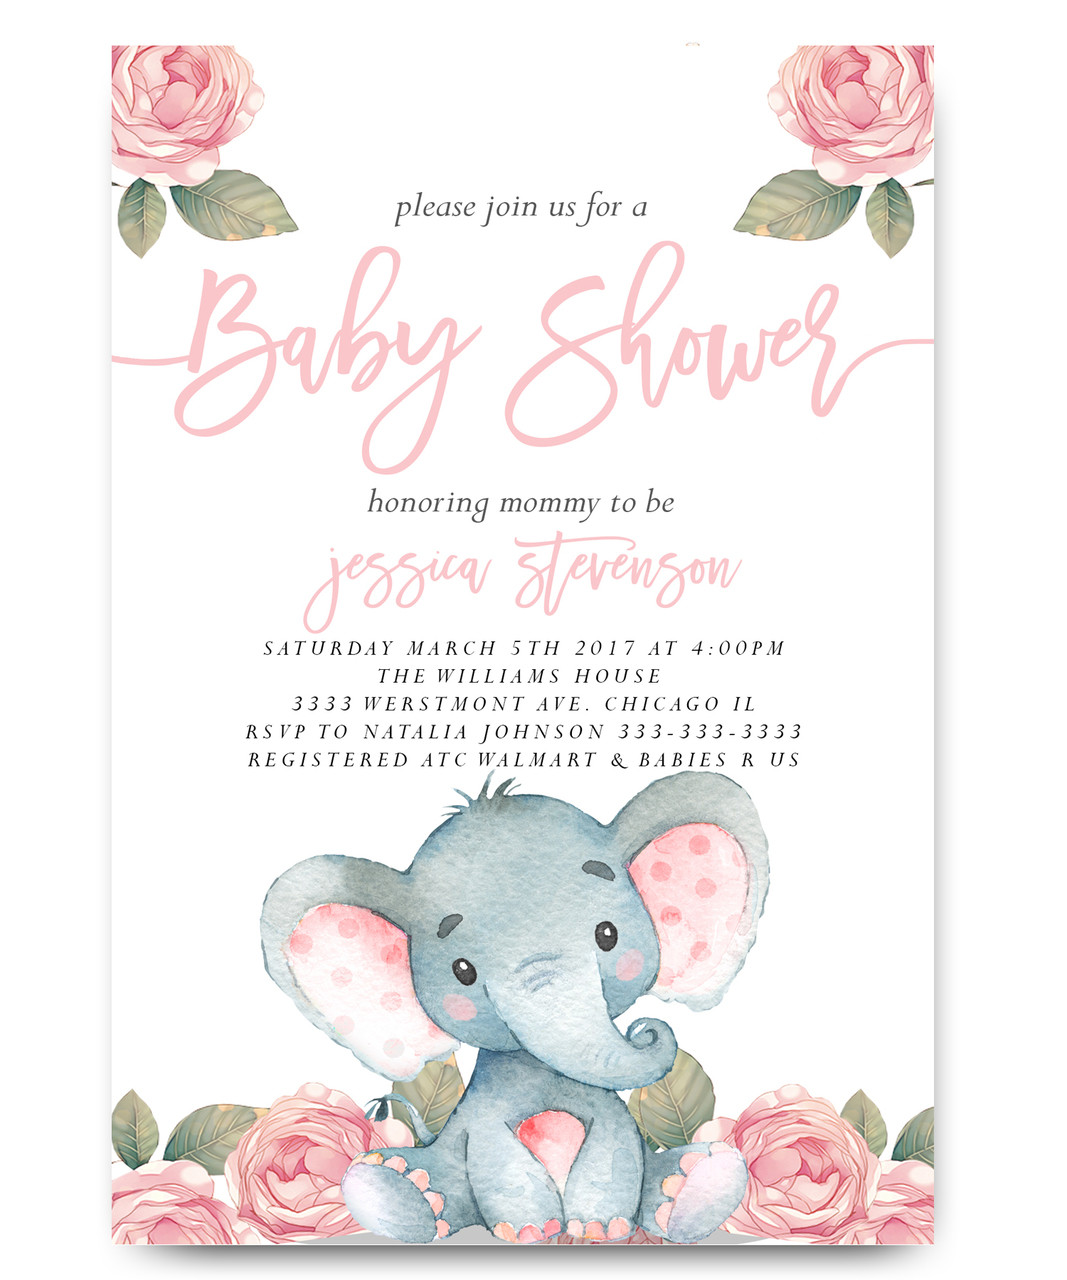 Elephant baby shower invitation pink floral elephant elephant baby shower invitationelephant with flowers elephant pink elephant vintage elephant filmwisefo